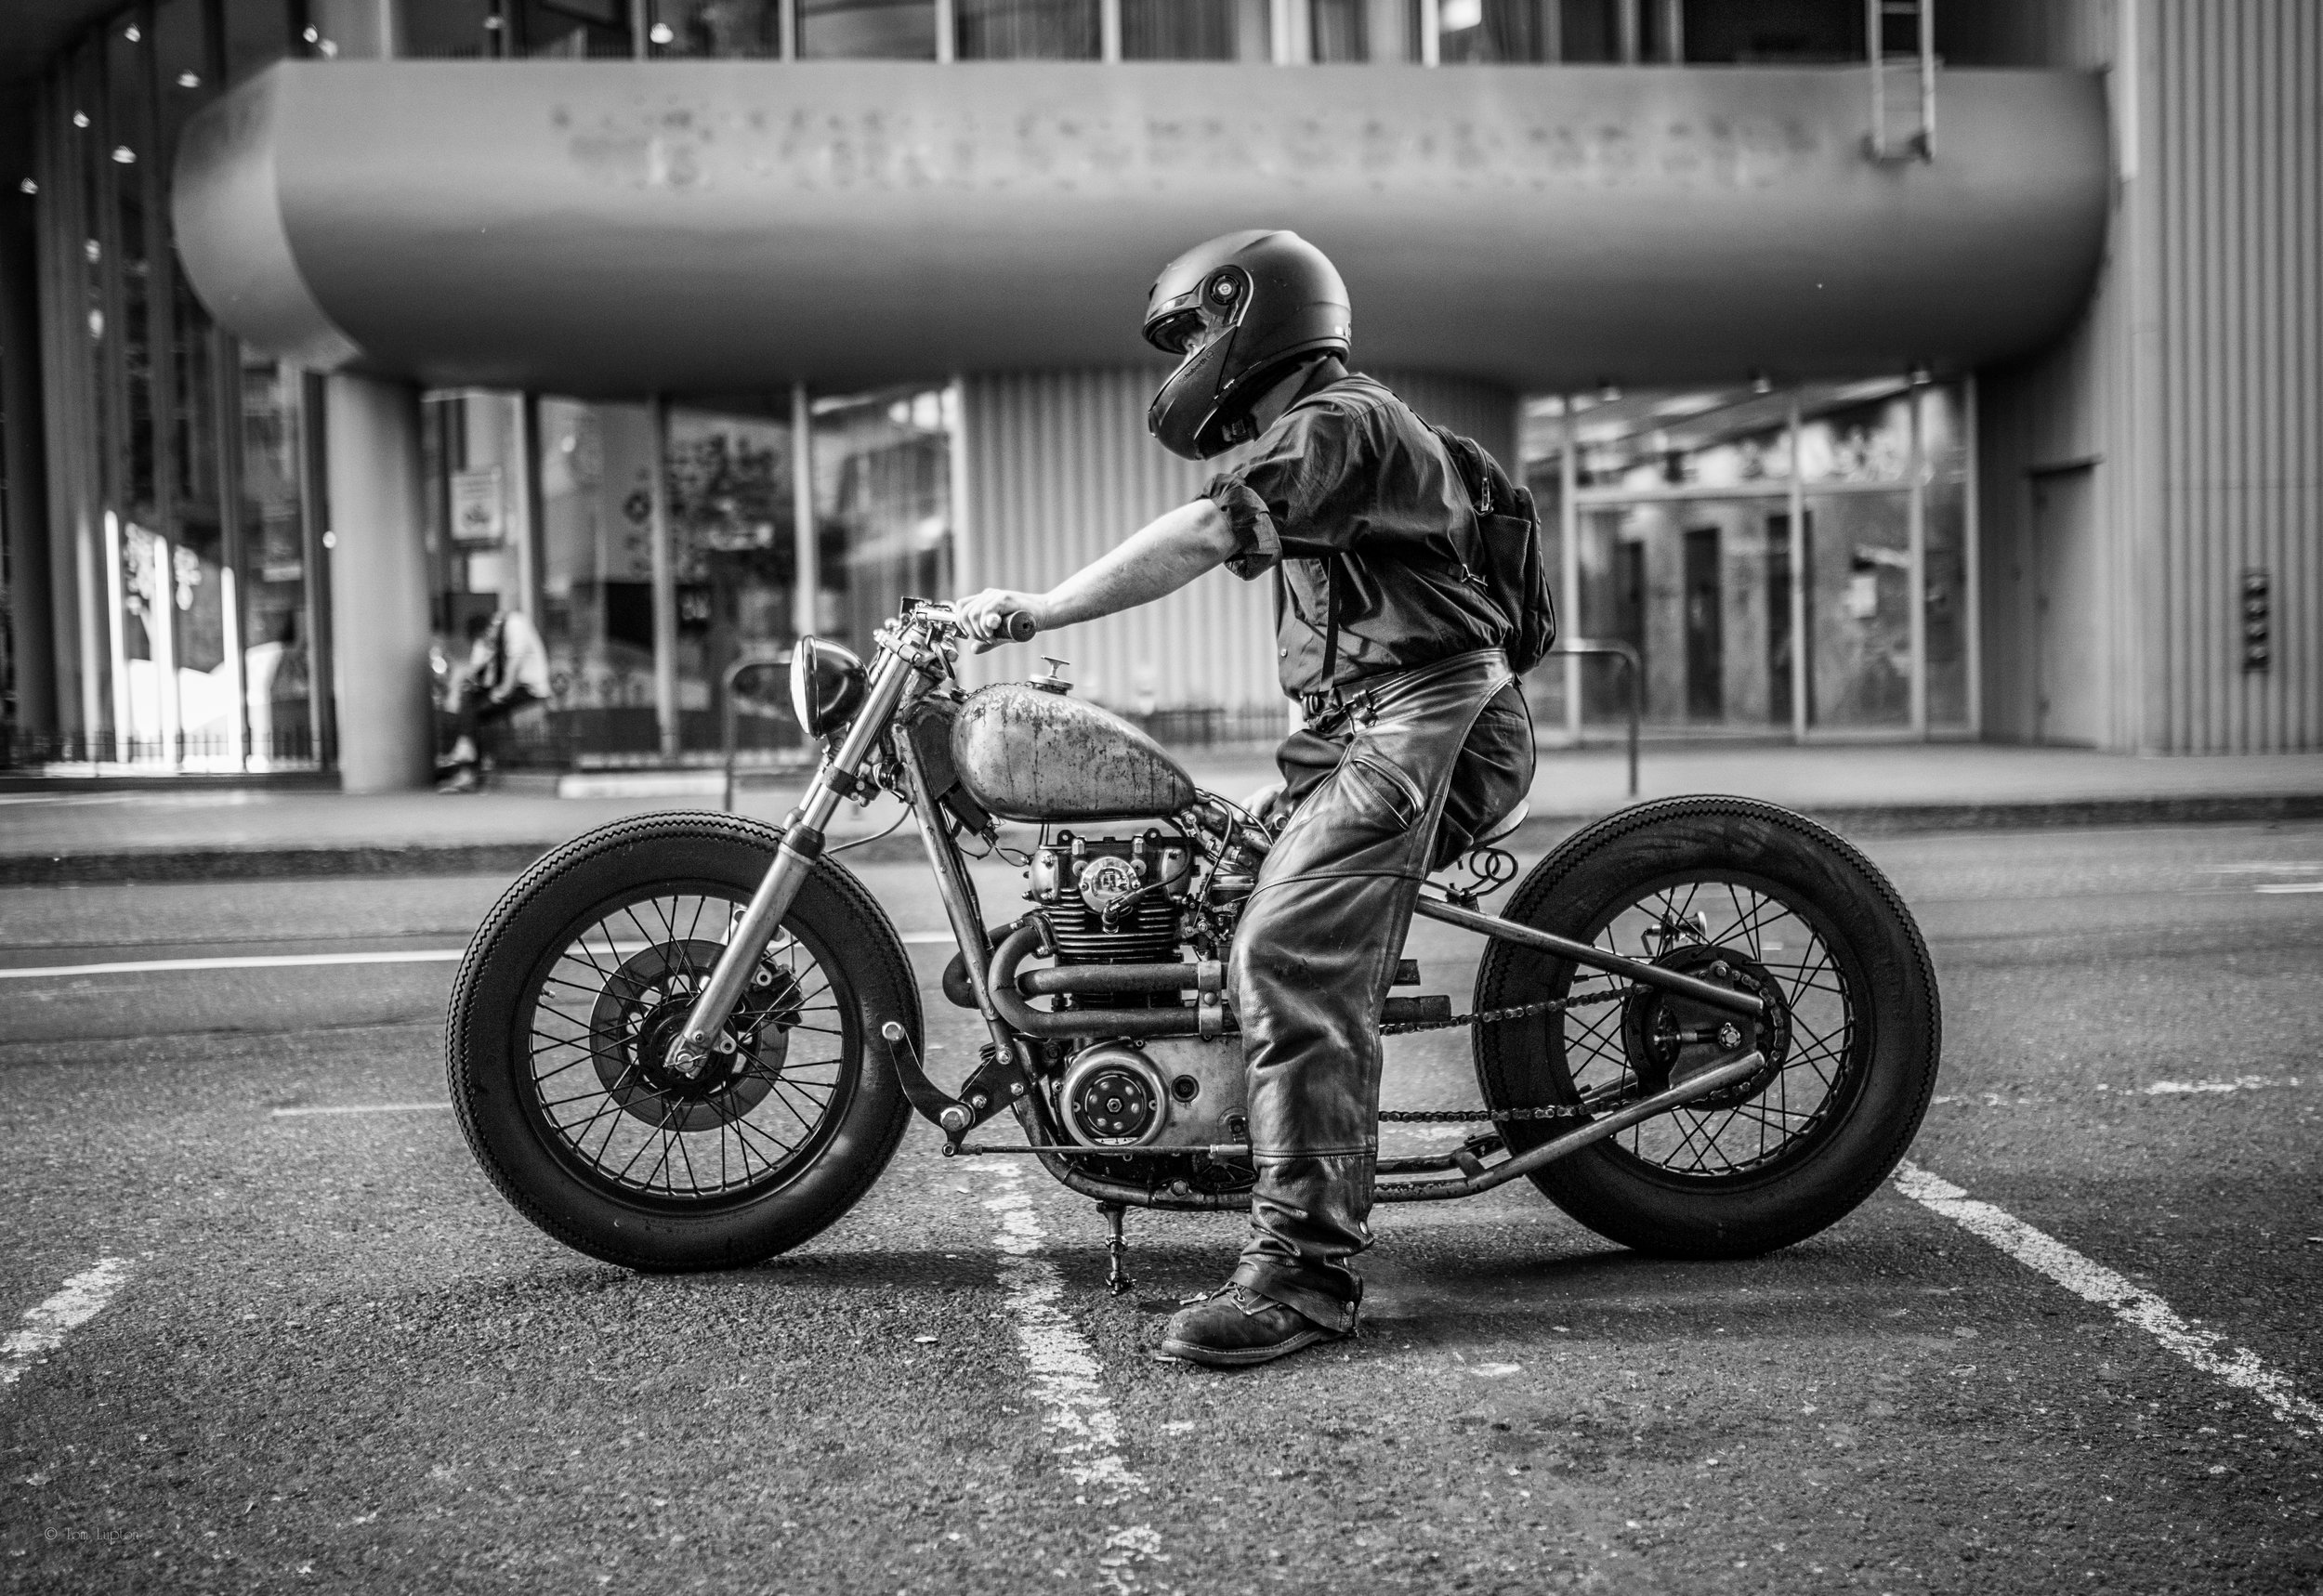 Tom_Lupton_Photography_Motorcycle.jpg